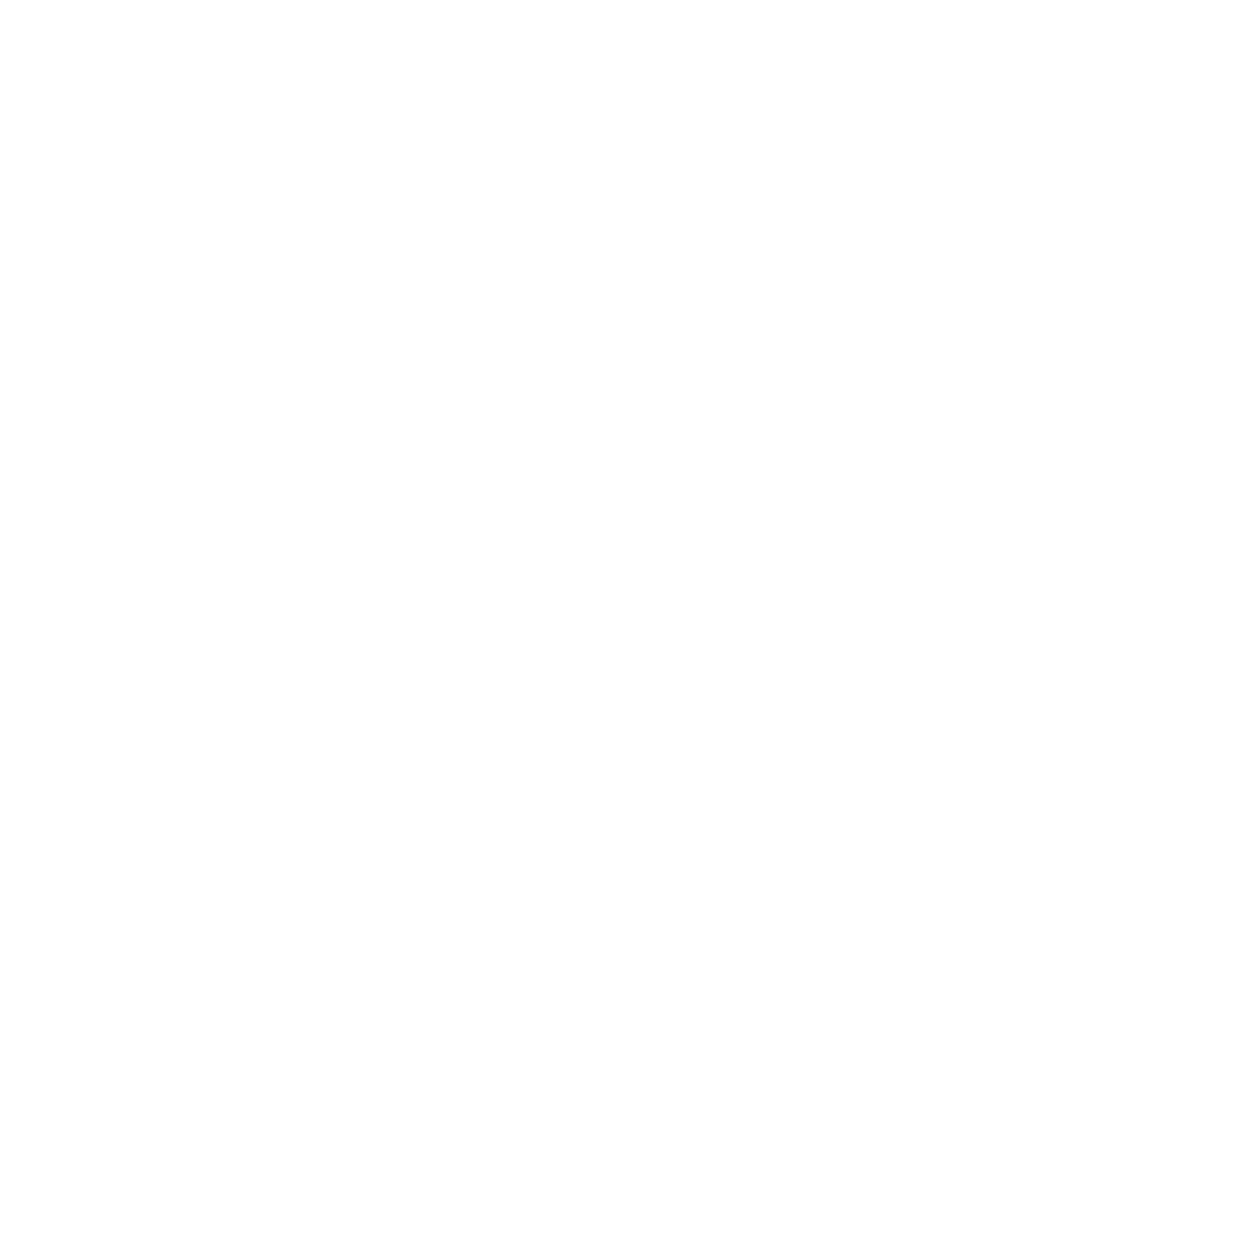 Bering inspired by arctic beauty